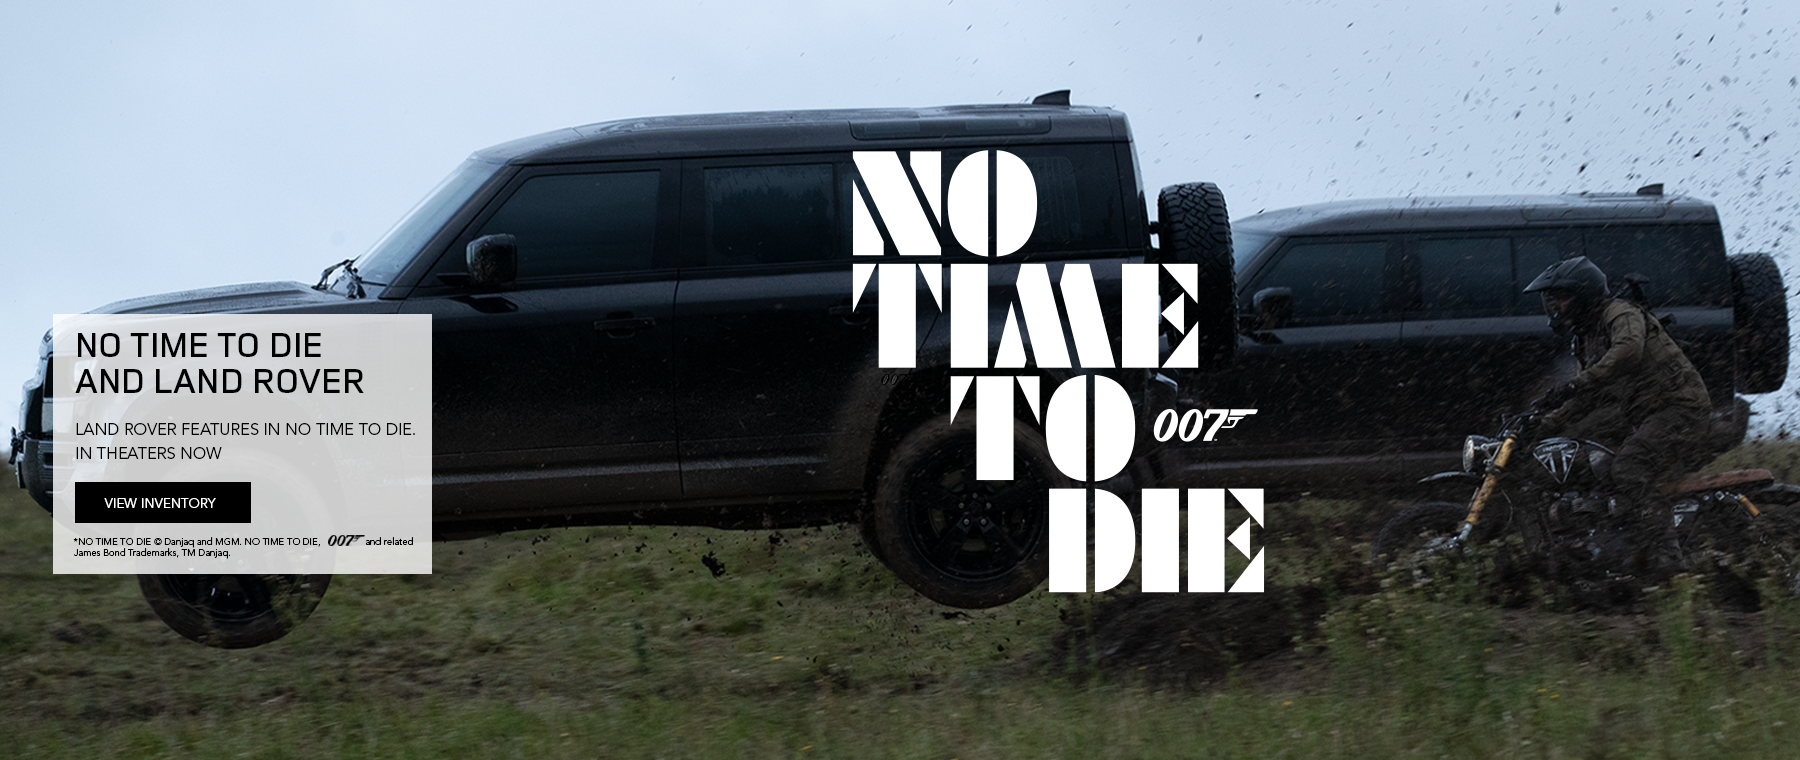 NO TIME TO DIE © Danjaq and MGM. NO TIME TO DIE, and related James Bond Trademarks, TM Danjaq